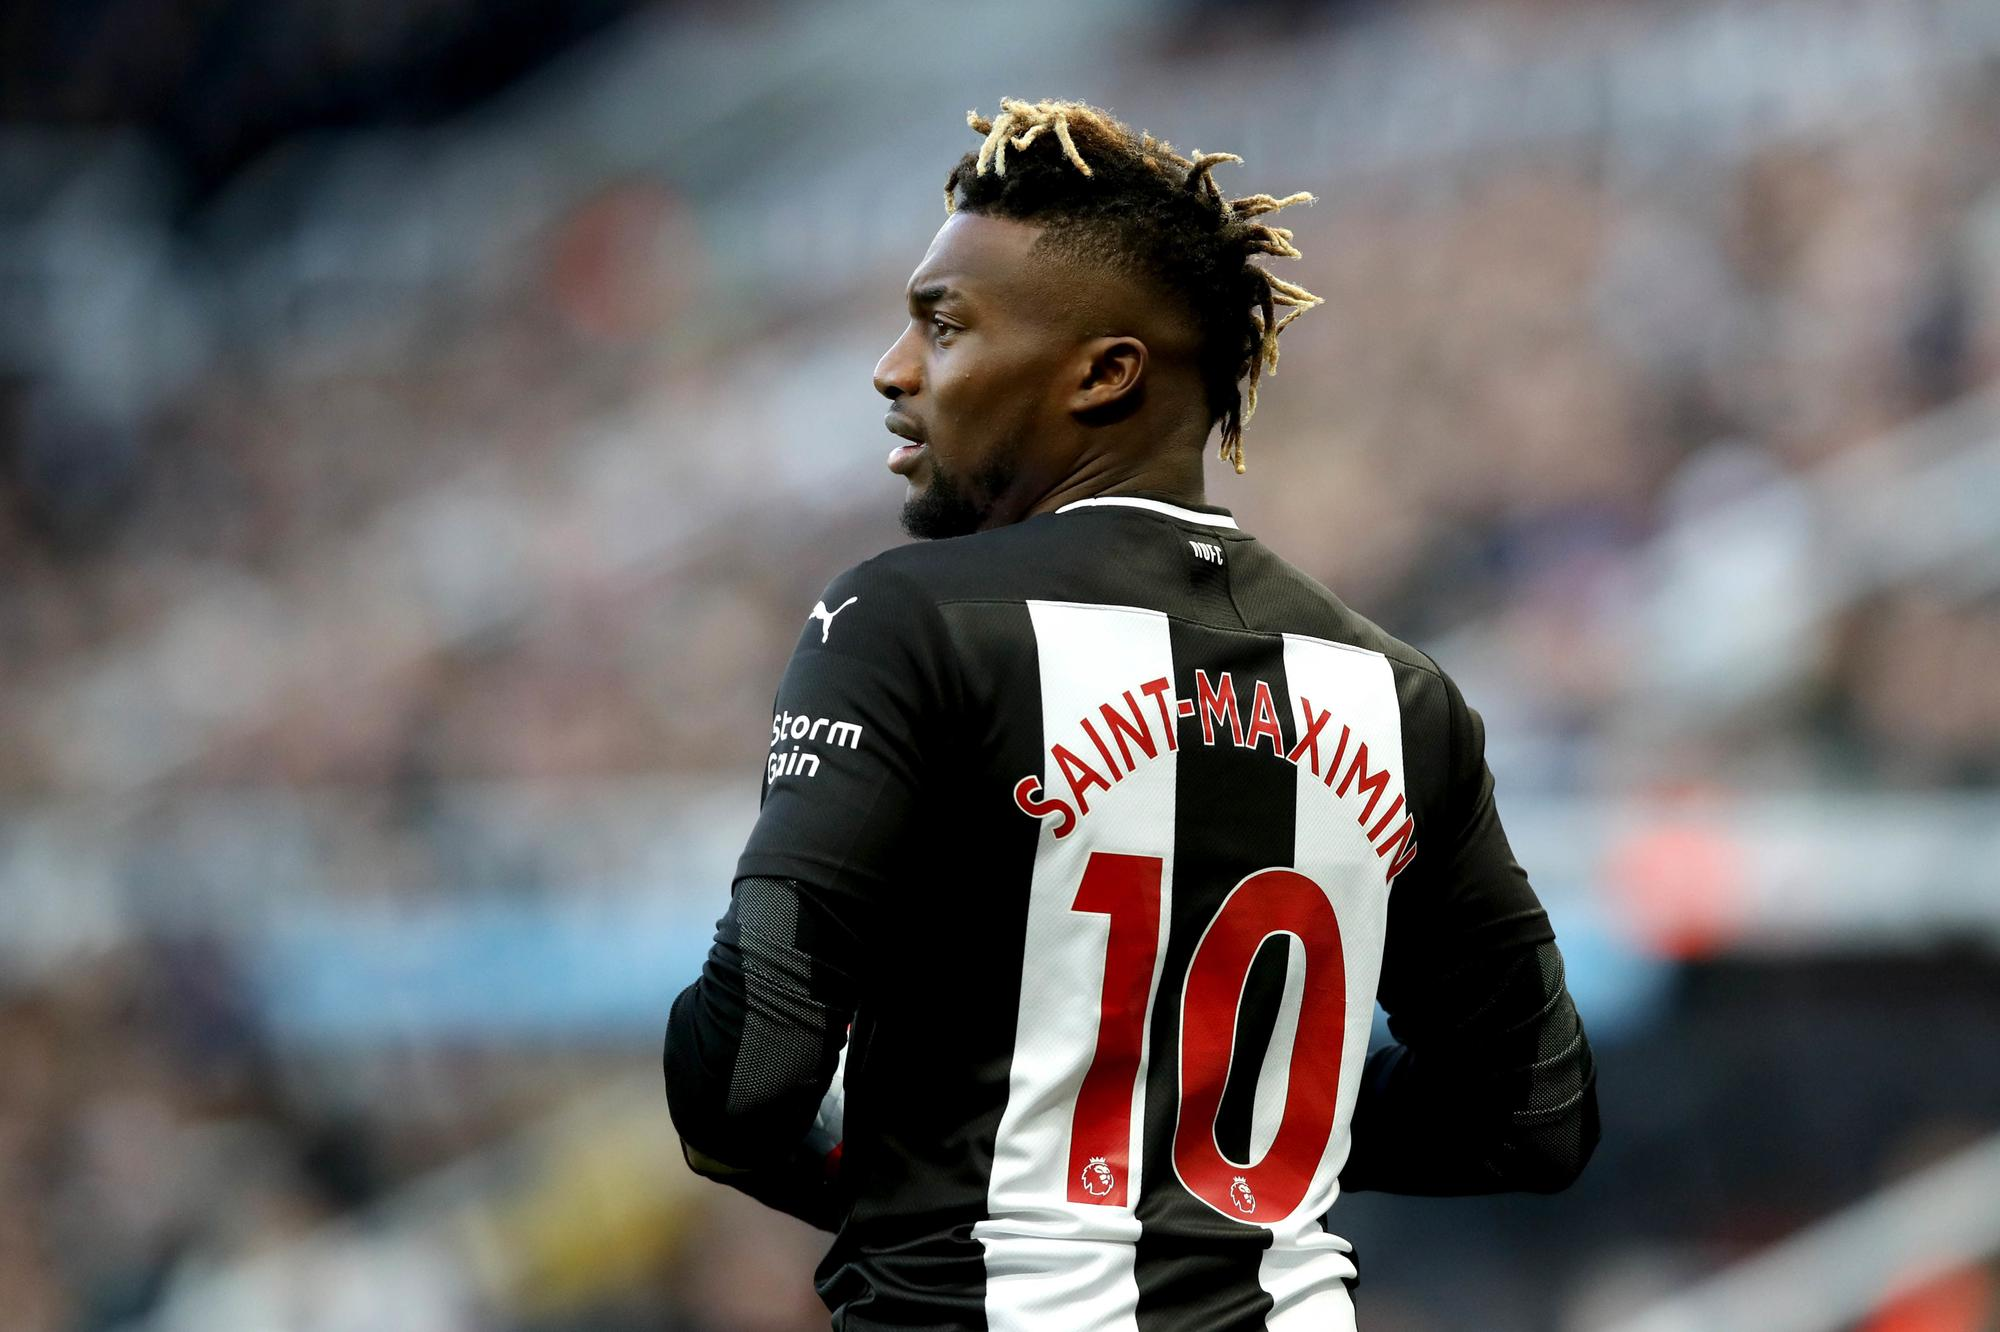 Allan to reacts  Newcastle Saint-Maximin United takeover